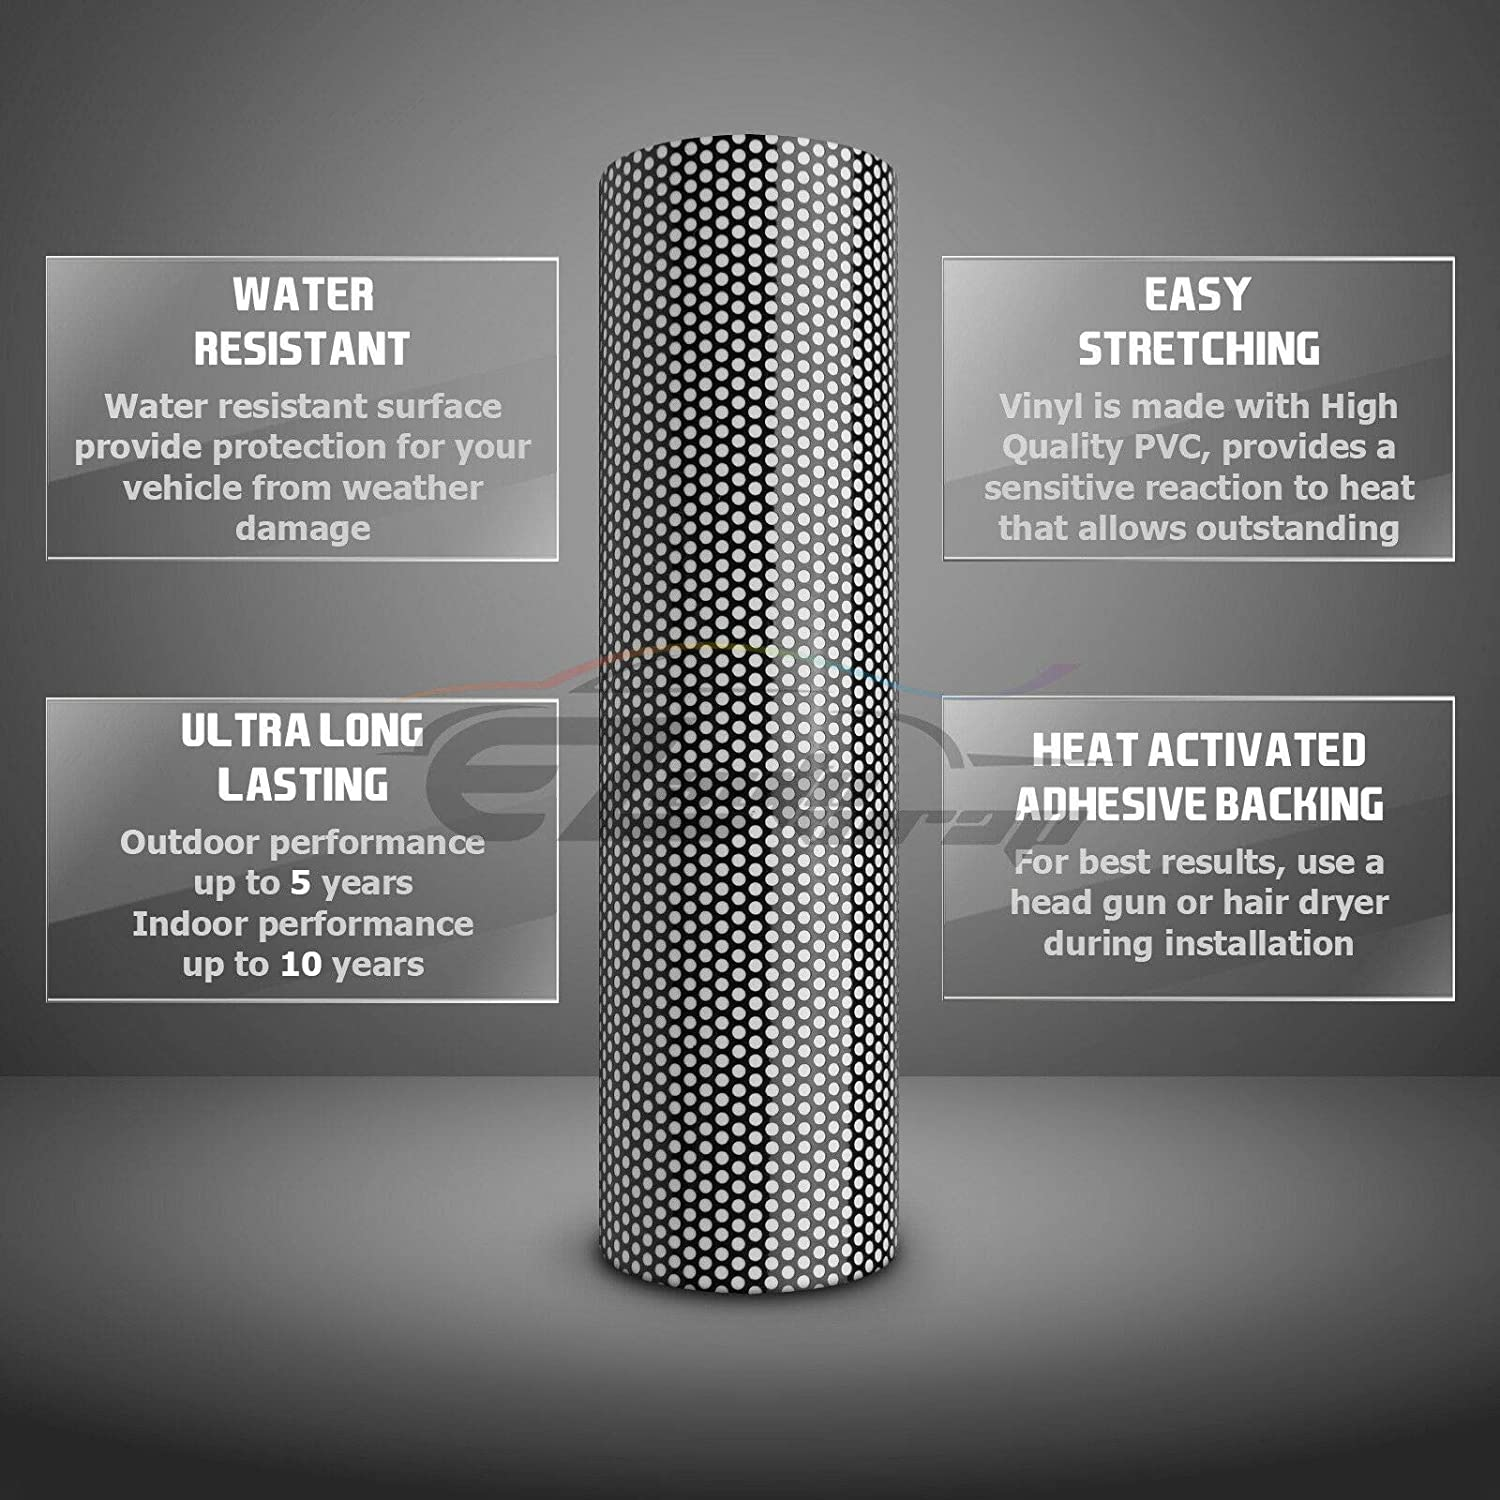 24X60 2FT X 5FT EZAUTOWRAP Free Tool Kit White One-Way Vision Perforated Print Media Vinyl Privacy Window Film Adhesive Glass Wrap Roll